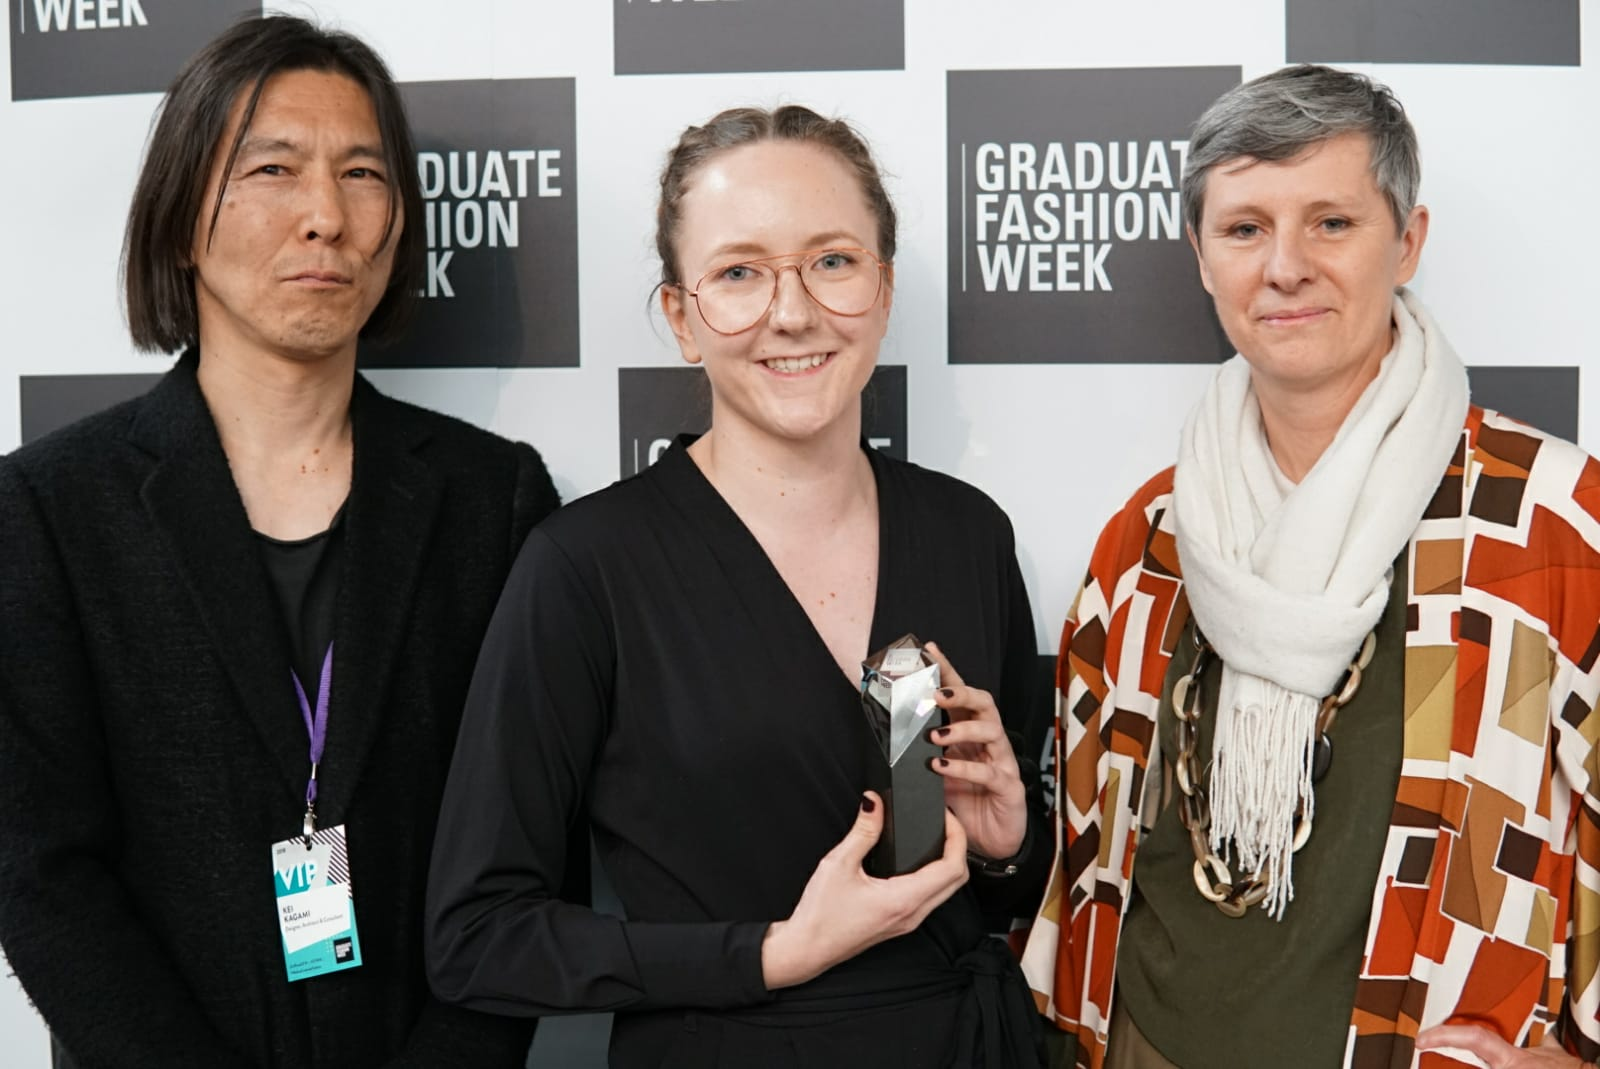 YKK Accessories Award winner Essie Pekhuri at GFW18 with the YKK team